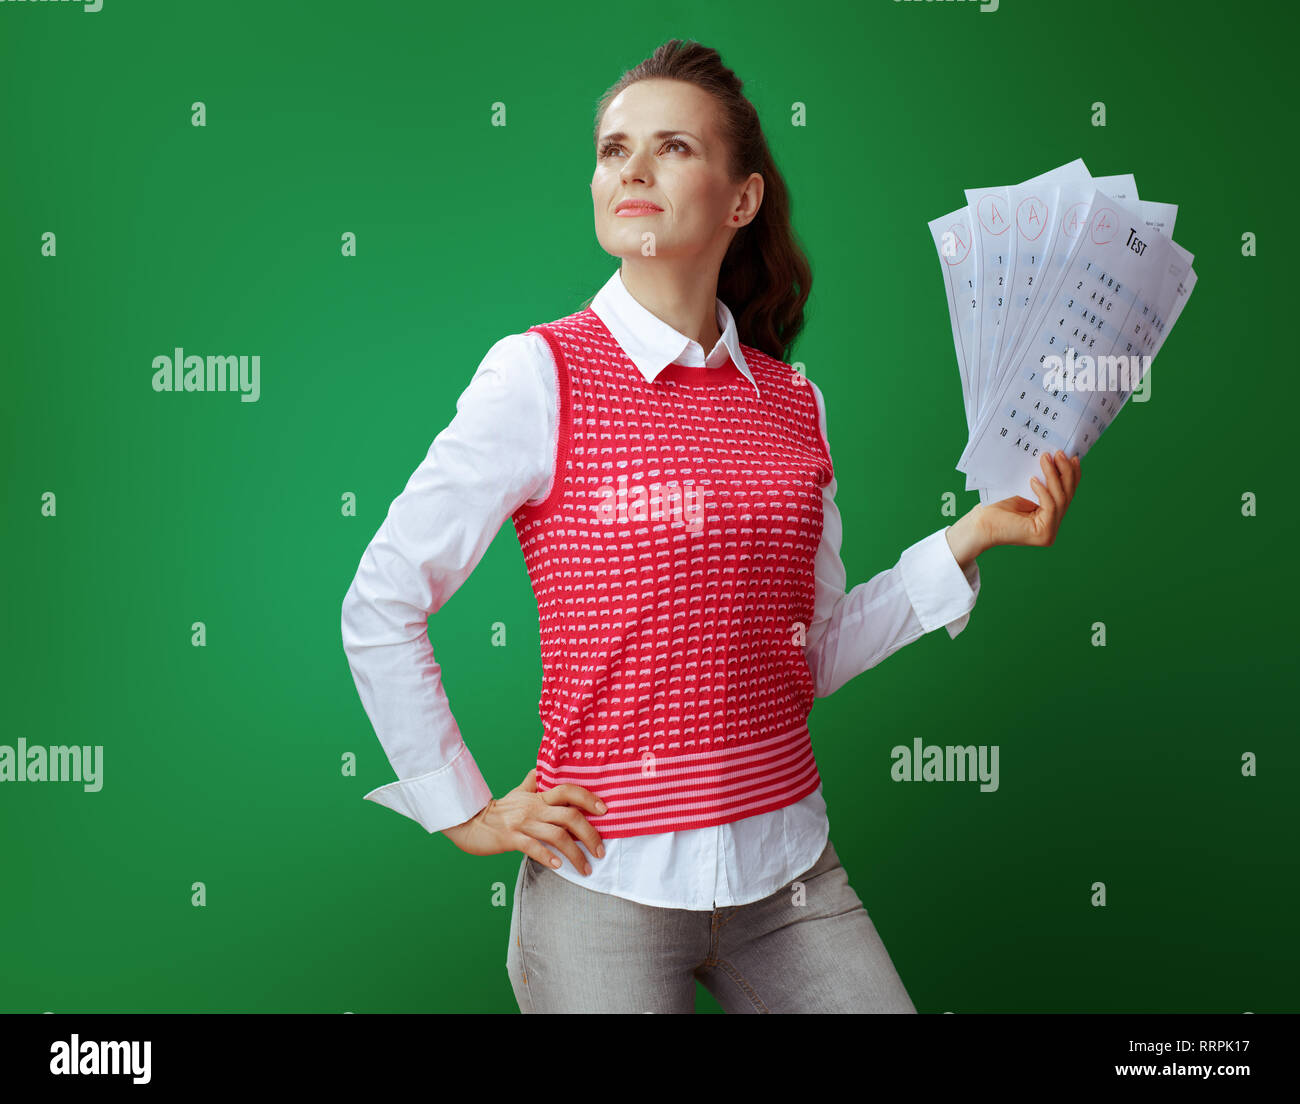 proud healthy student woman in grey jeans and pink sleeveless shirt showing A+ exam results against green background. - Stock Image